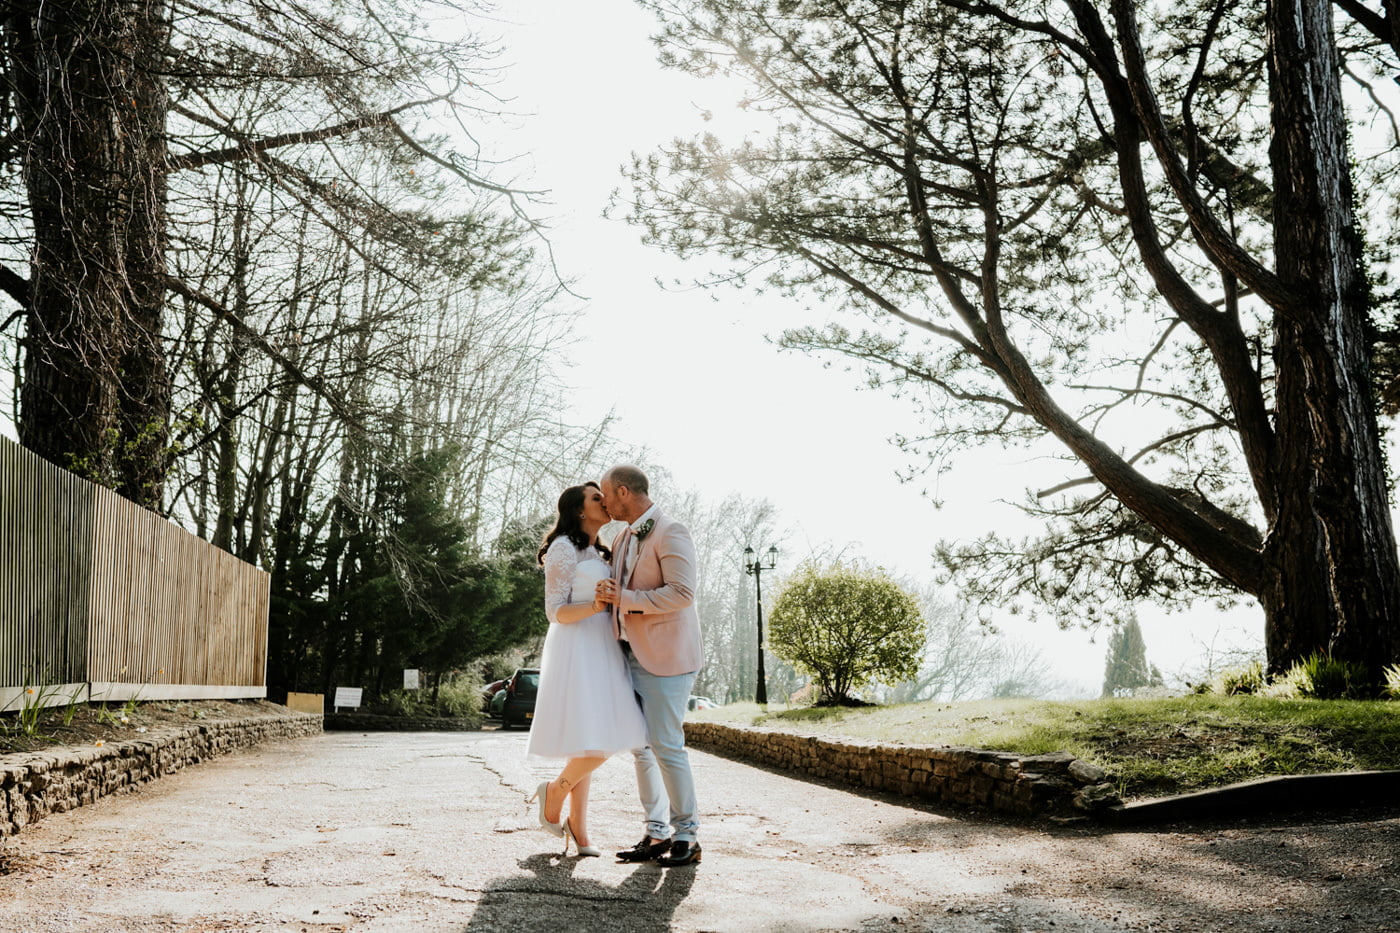 Maisie and Jack, Hatton Court, Gloucestershire 29